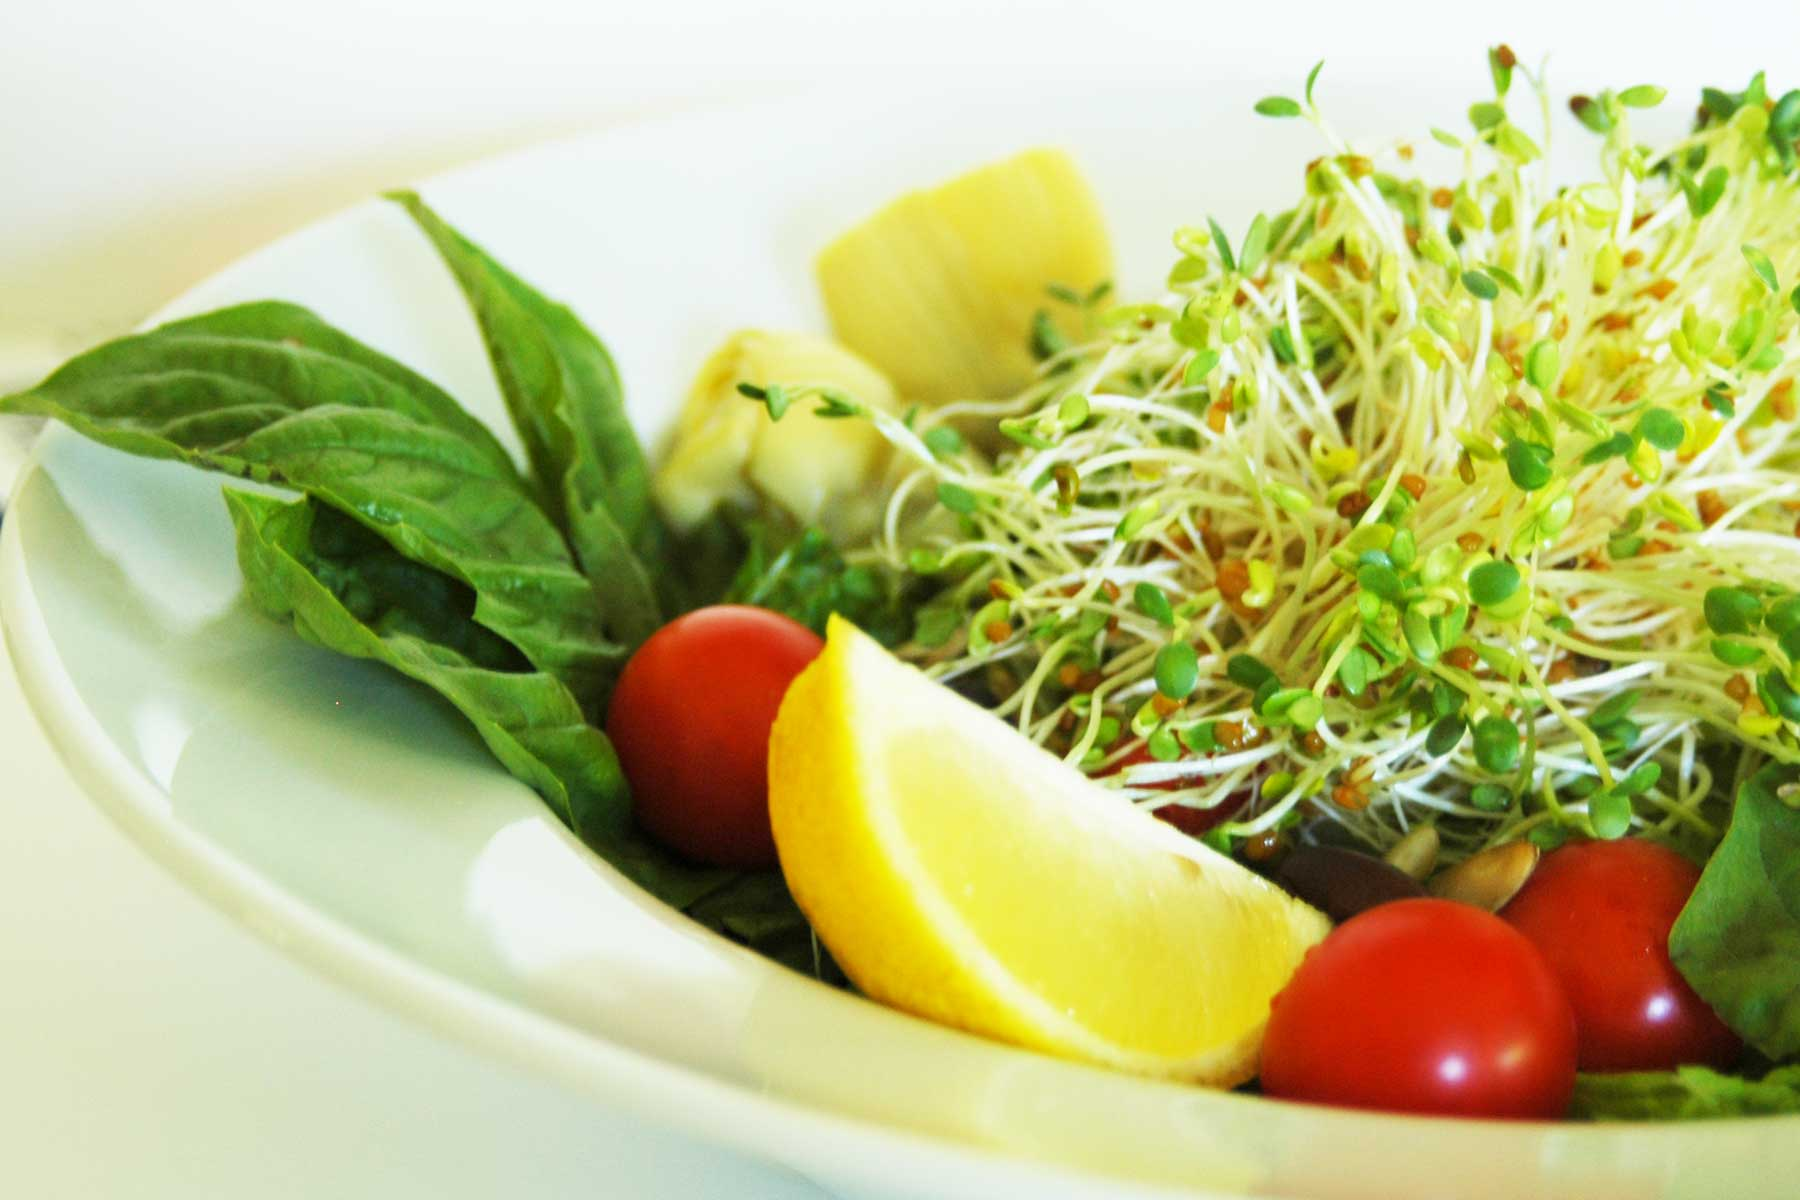 basil and sprout salad with lemon juice dressing